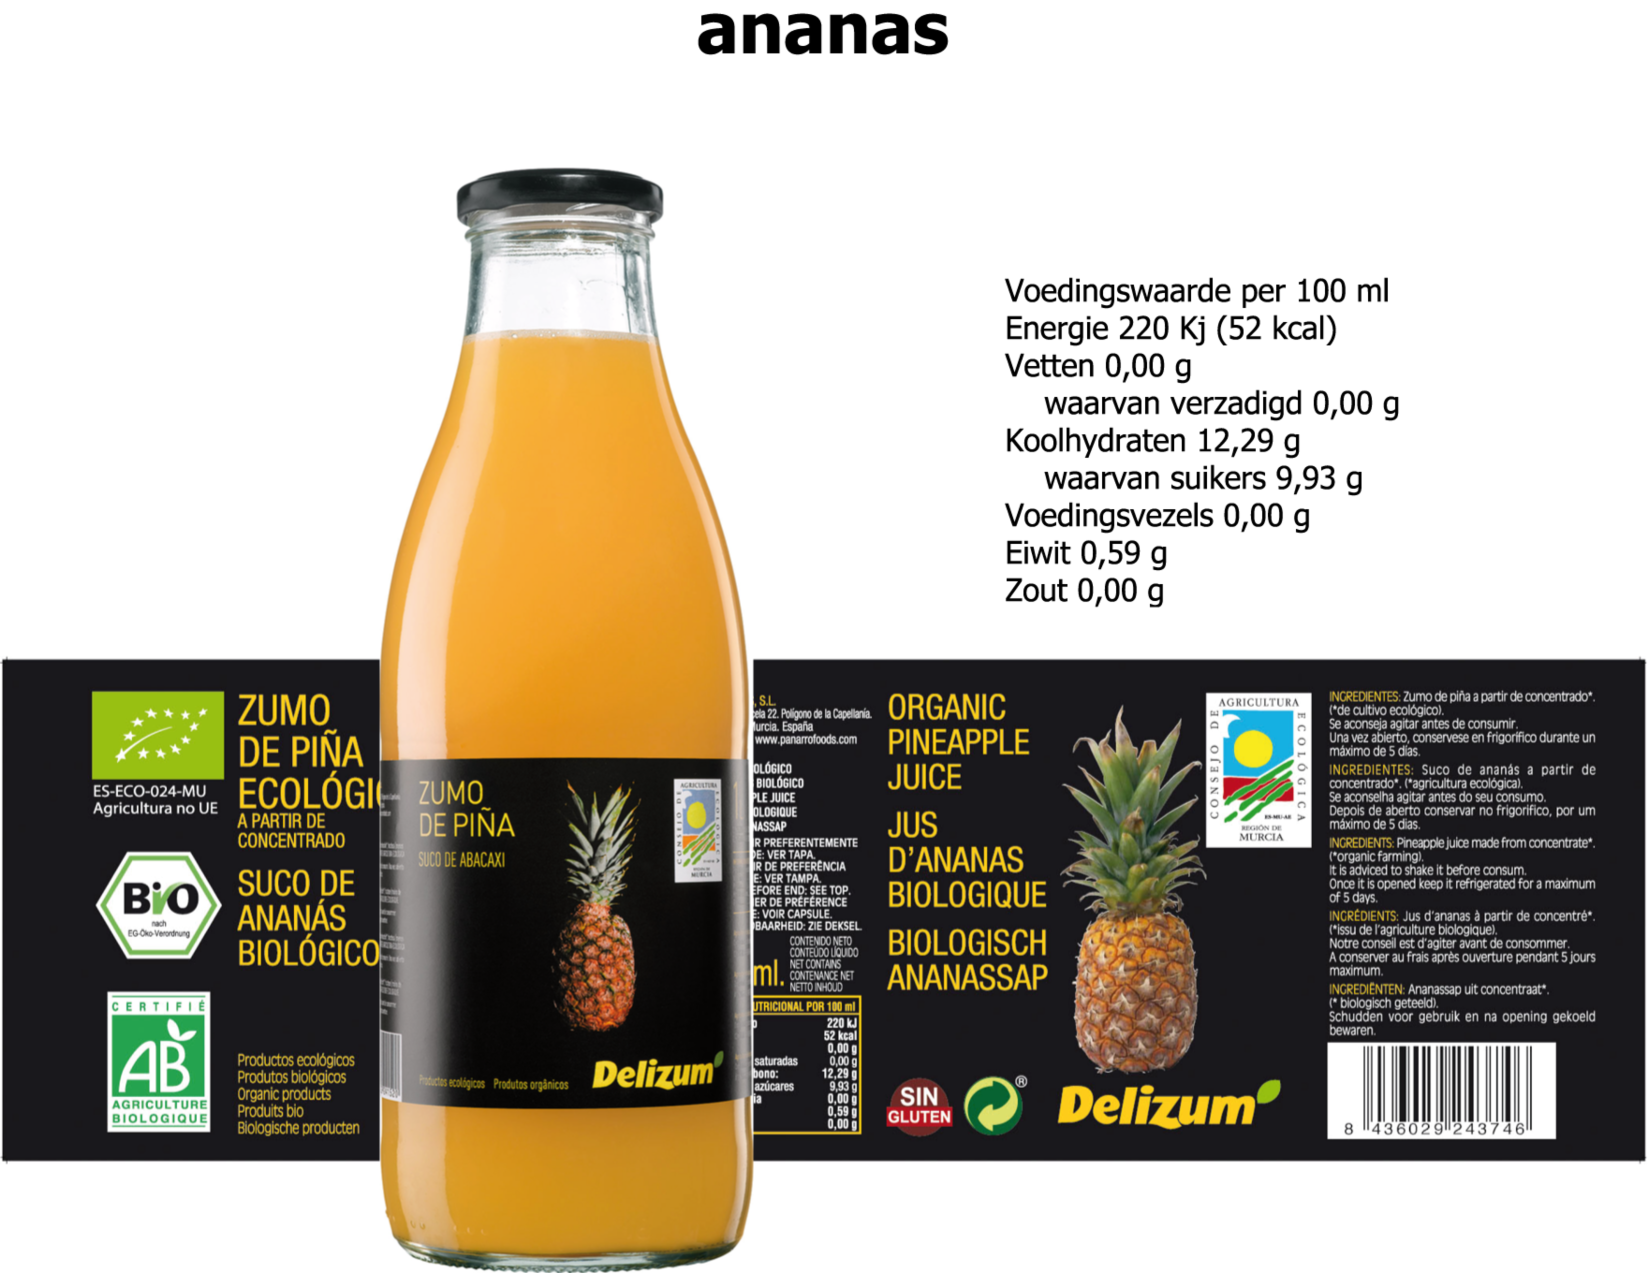 ananas nw